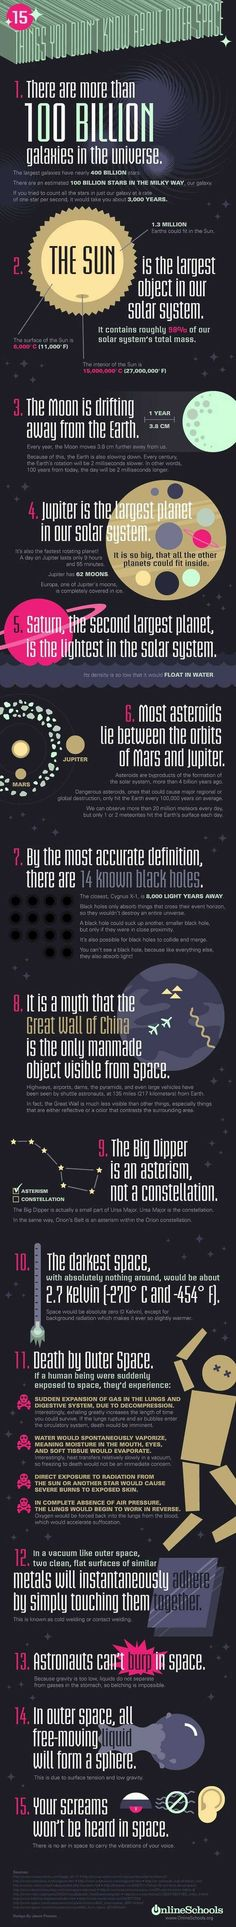 Awesome Space Infographic!  The only downside with these infographics is that they are so long I will never be able to print and display them.